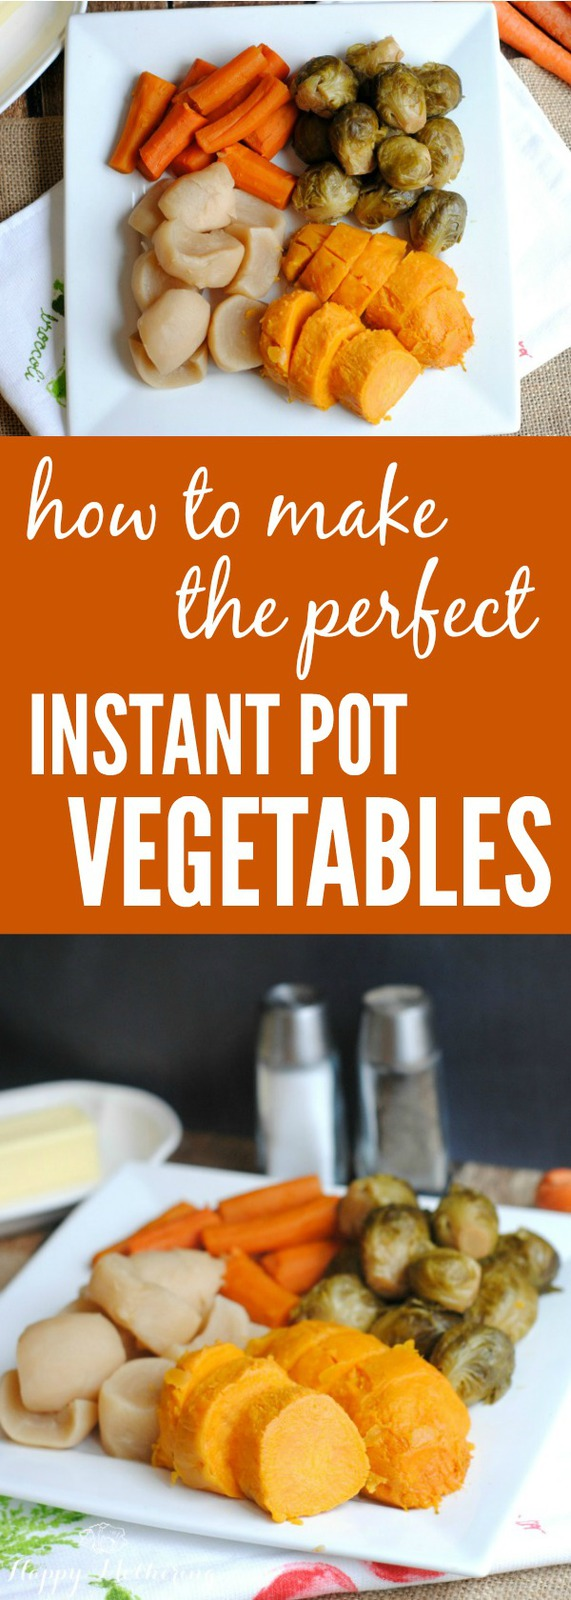 Are you looking for ideas on how to get dinner on the table fast? We'll show you how to make the perfect Instant Pot vegetables in just a few minutes.